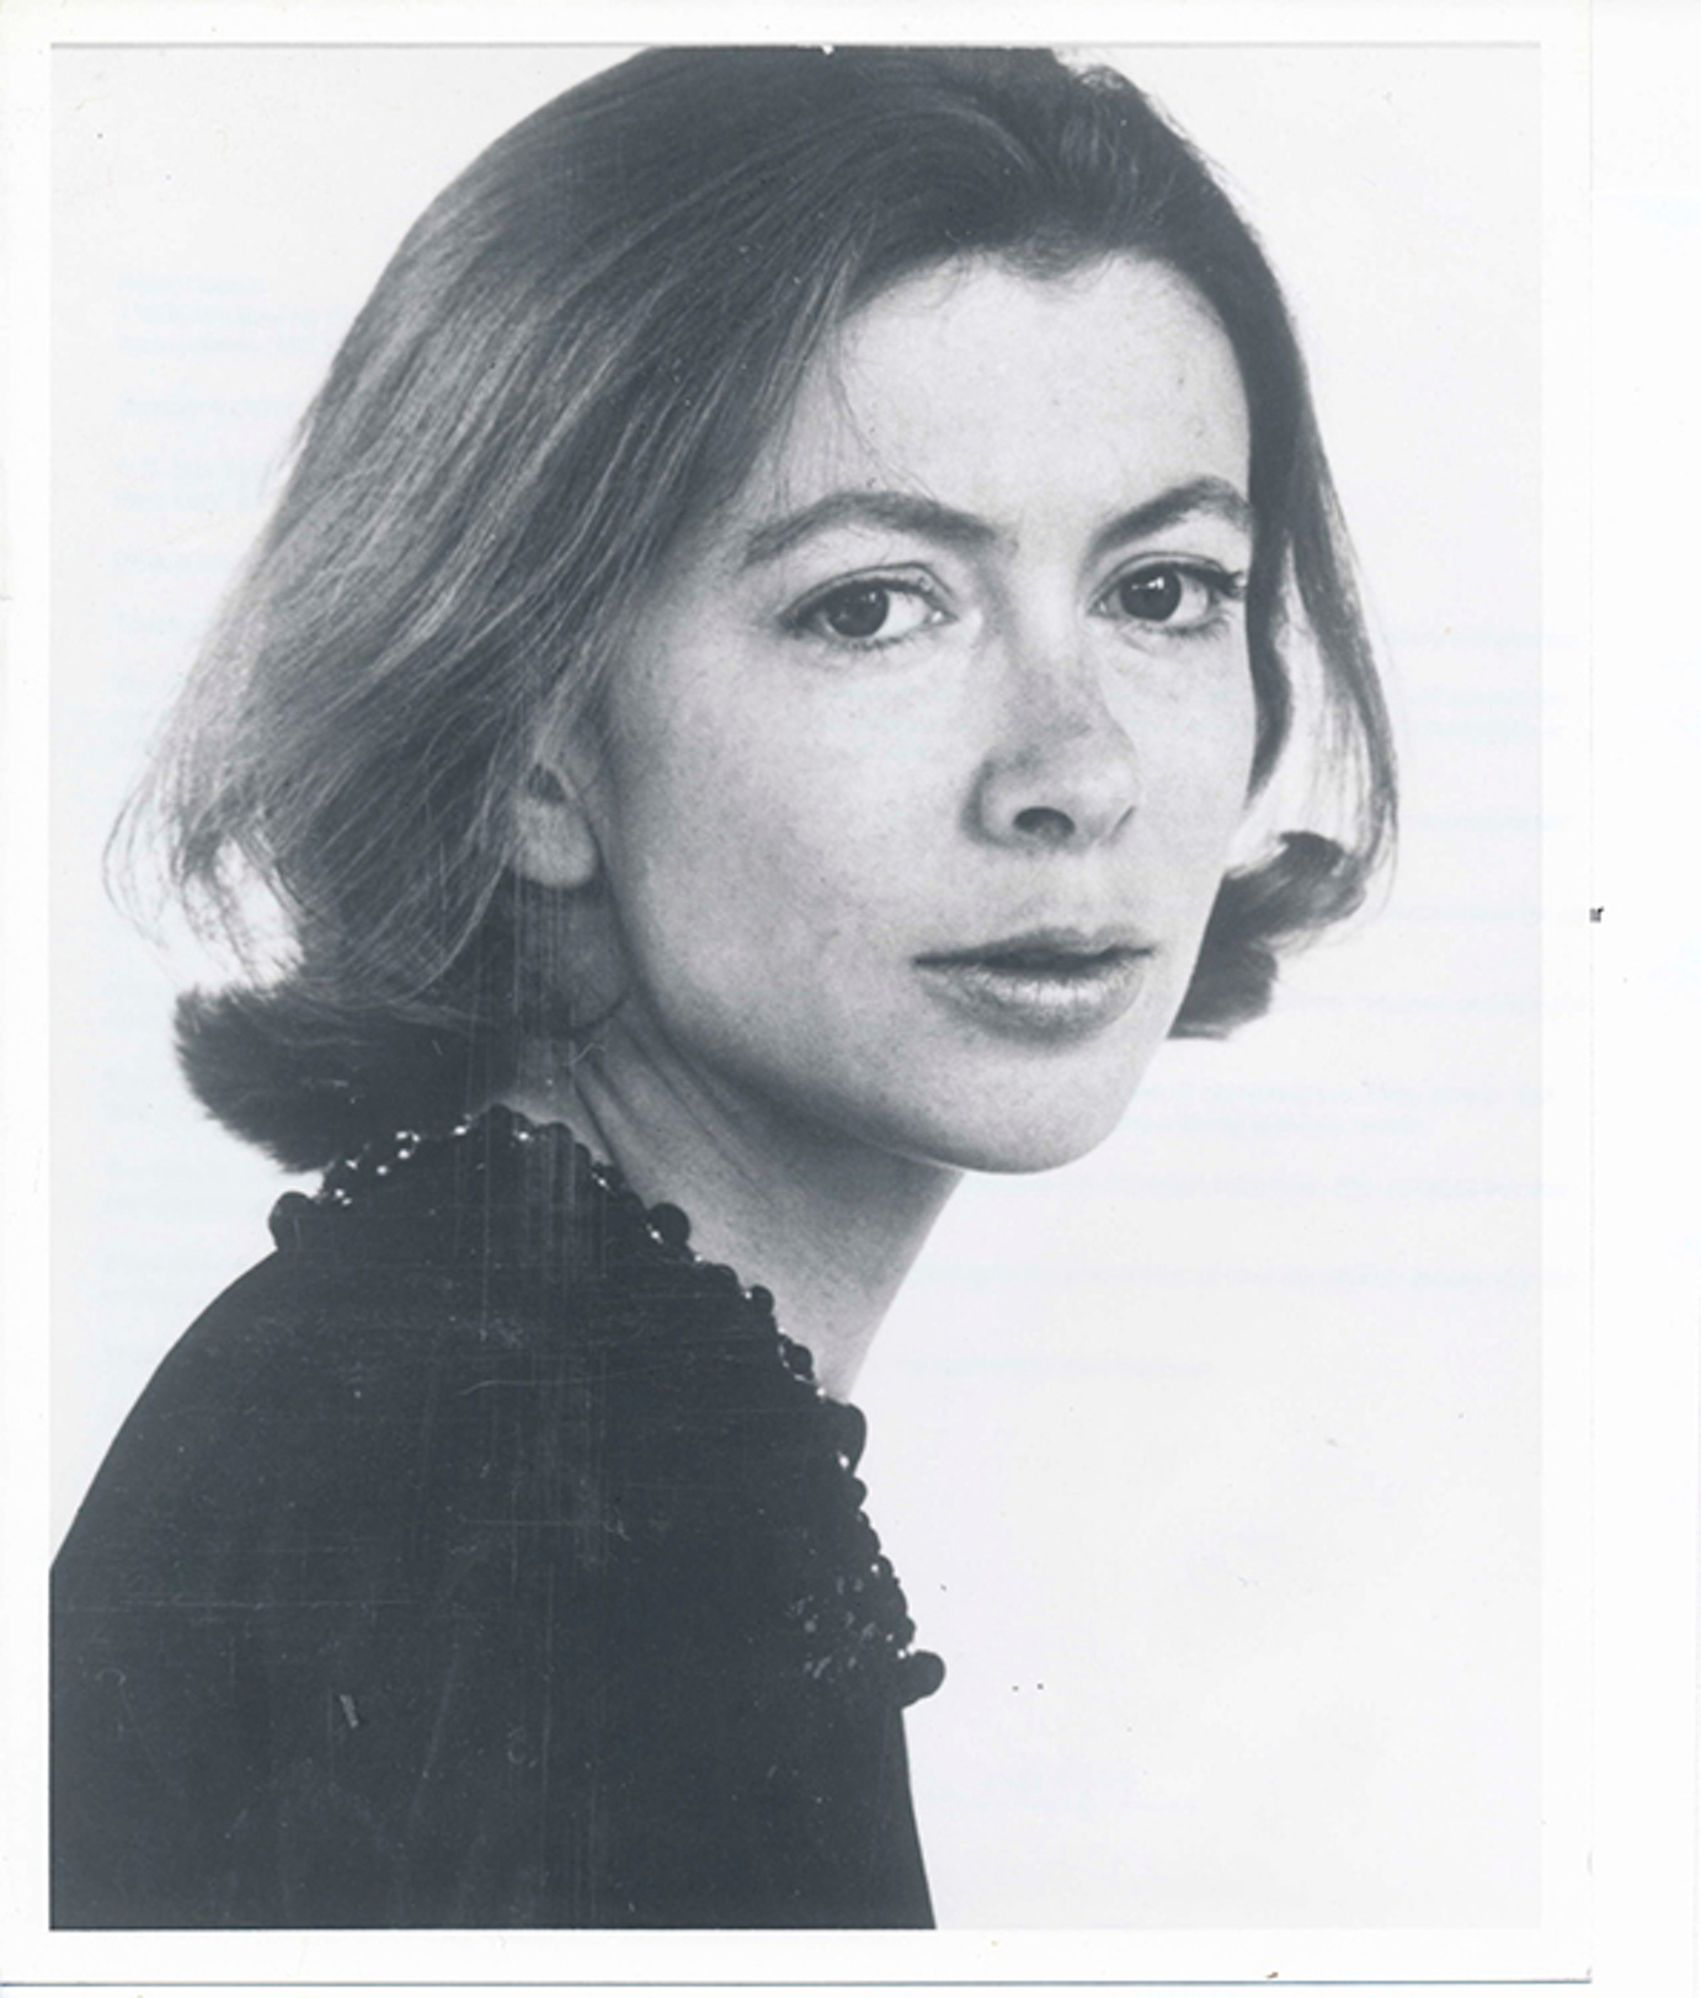 Joan Didion, 1956 - People with self-respect exhibit a certain toughness, a kind of moral nerve. They display what was once called character.